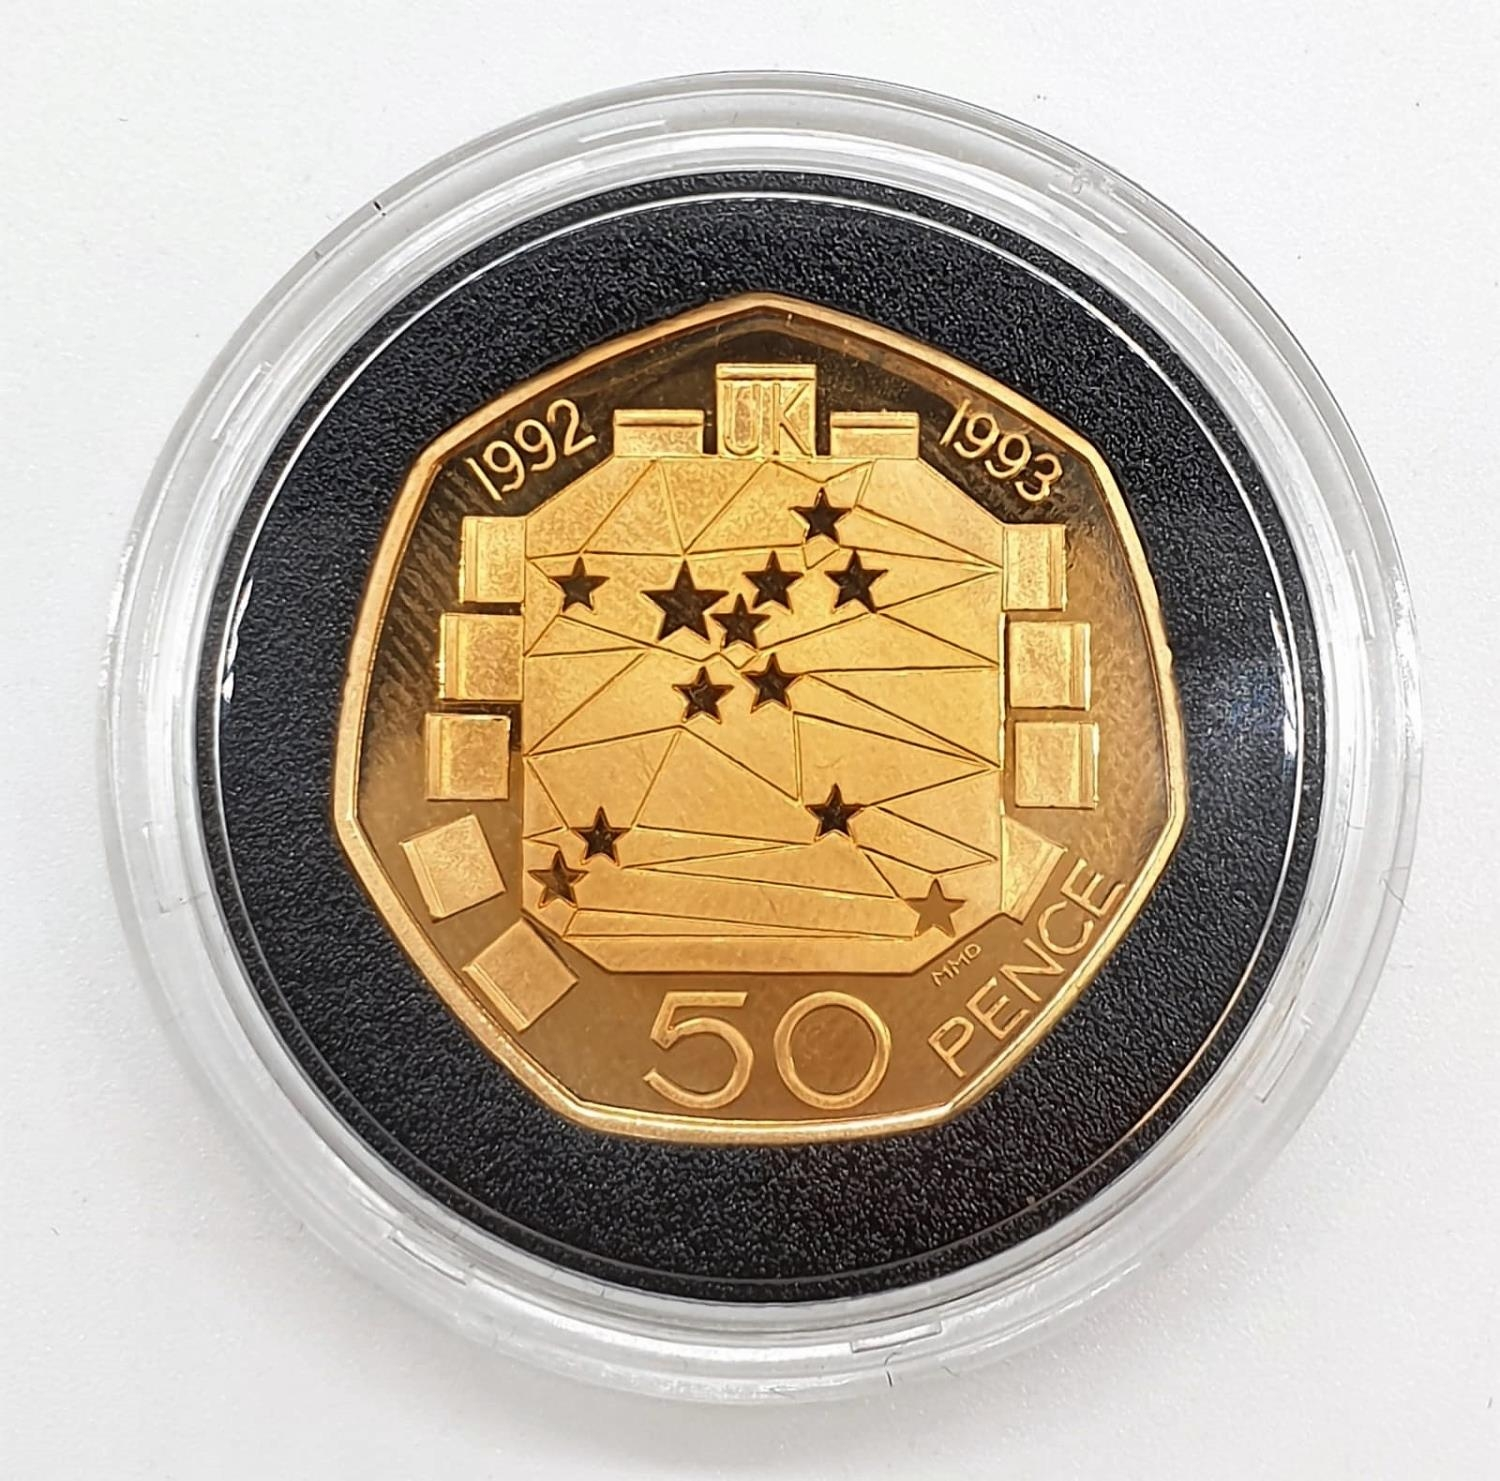 1992-1993 GOLD PROOF 50P COIN EU, SET IN 22ct GOLD, WEIGHT 26.32g With ORIGINAL BOX AND COA - Image 2 of 5